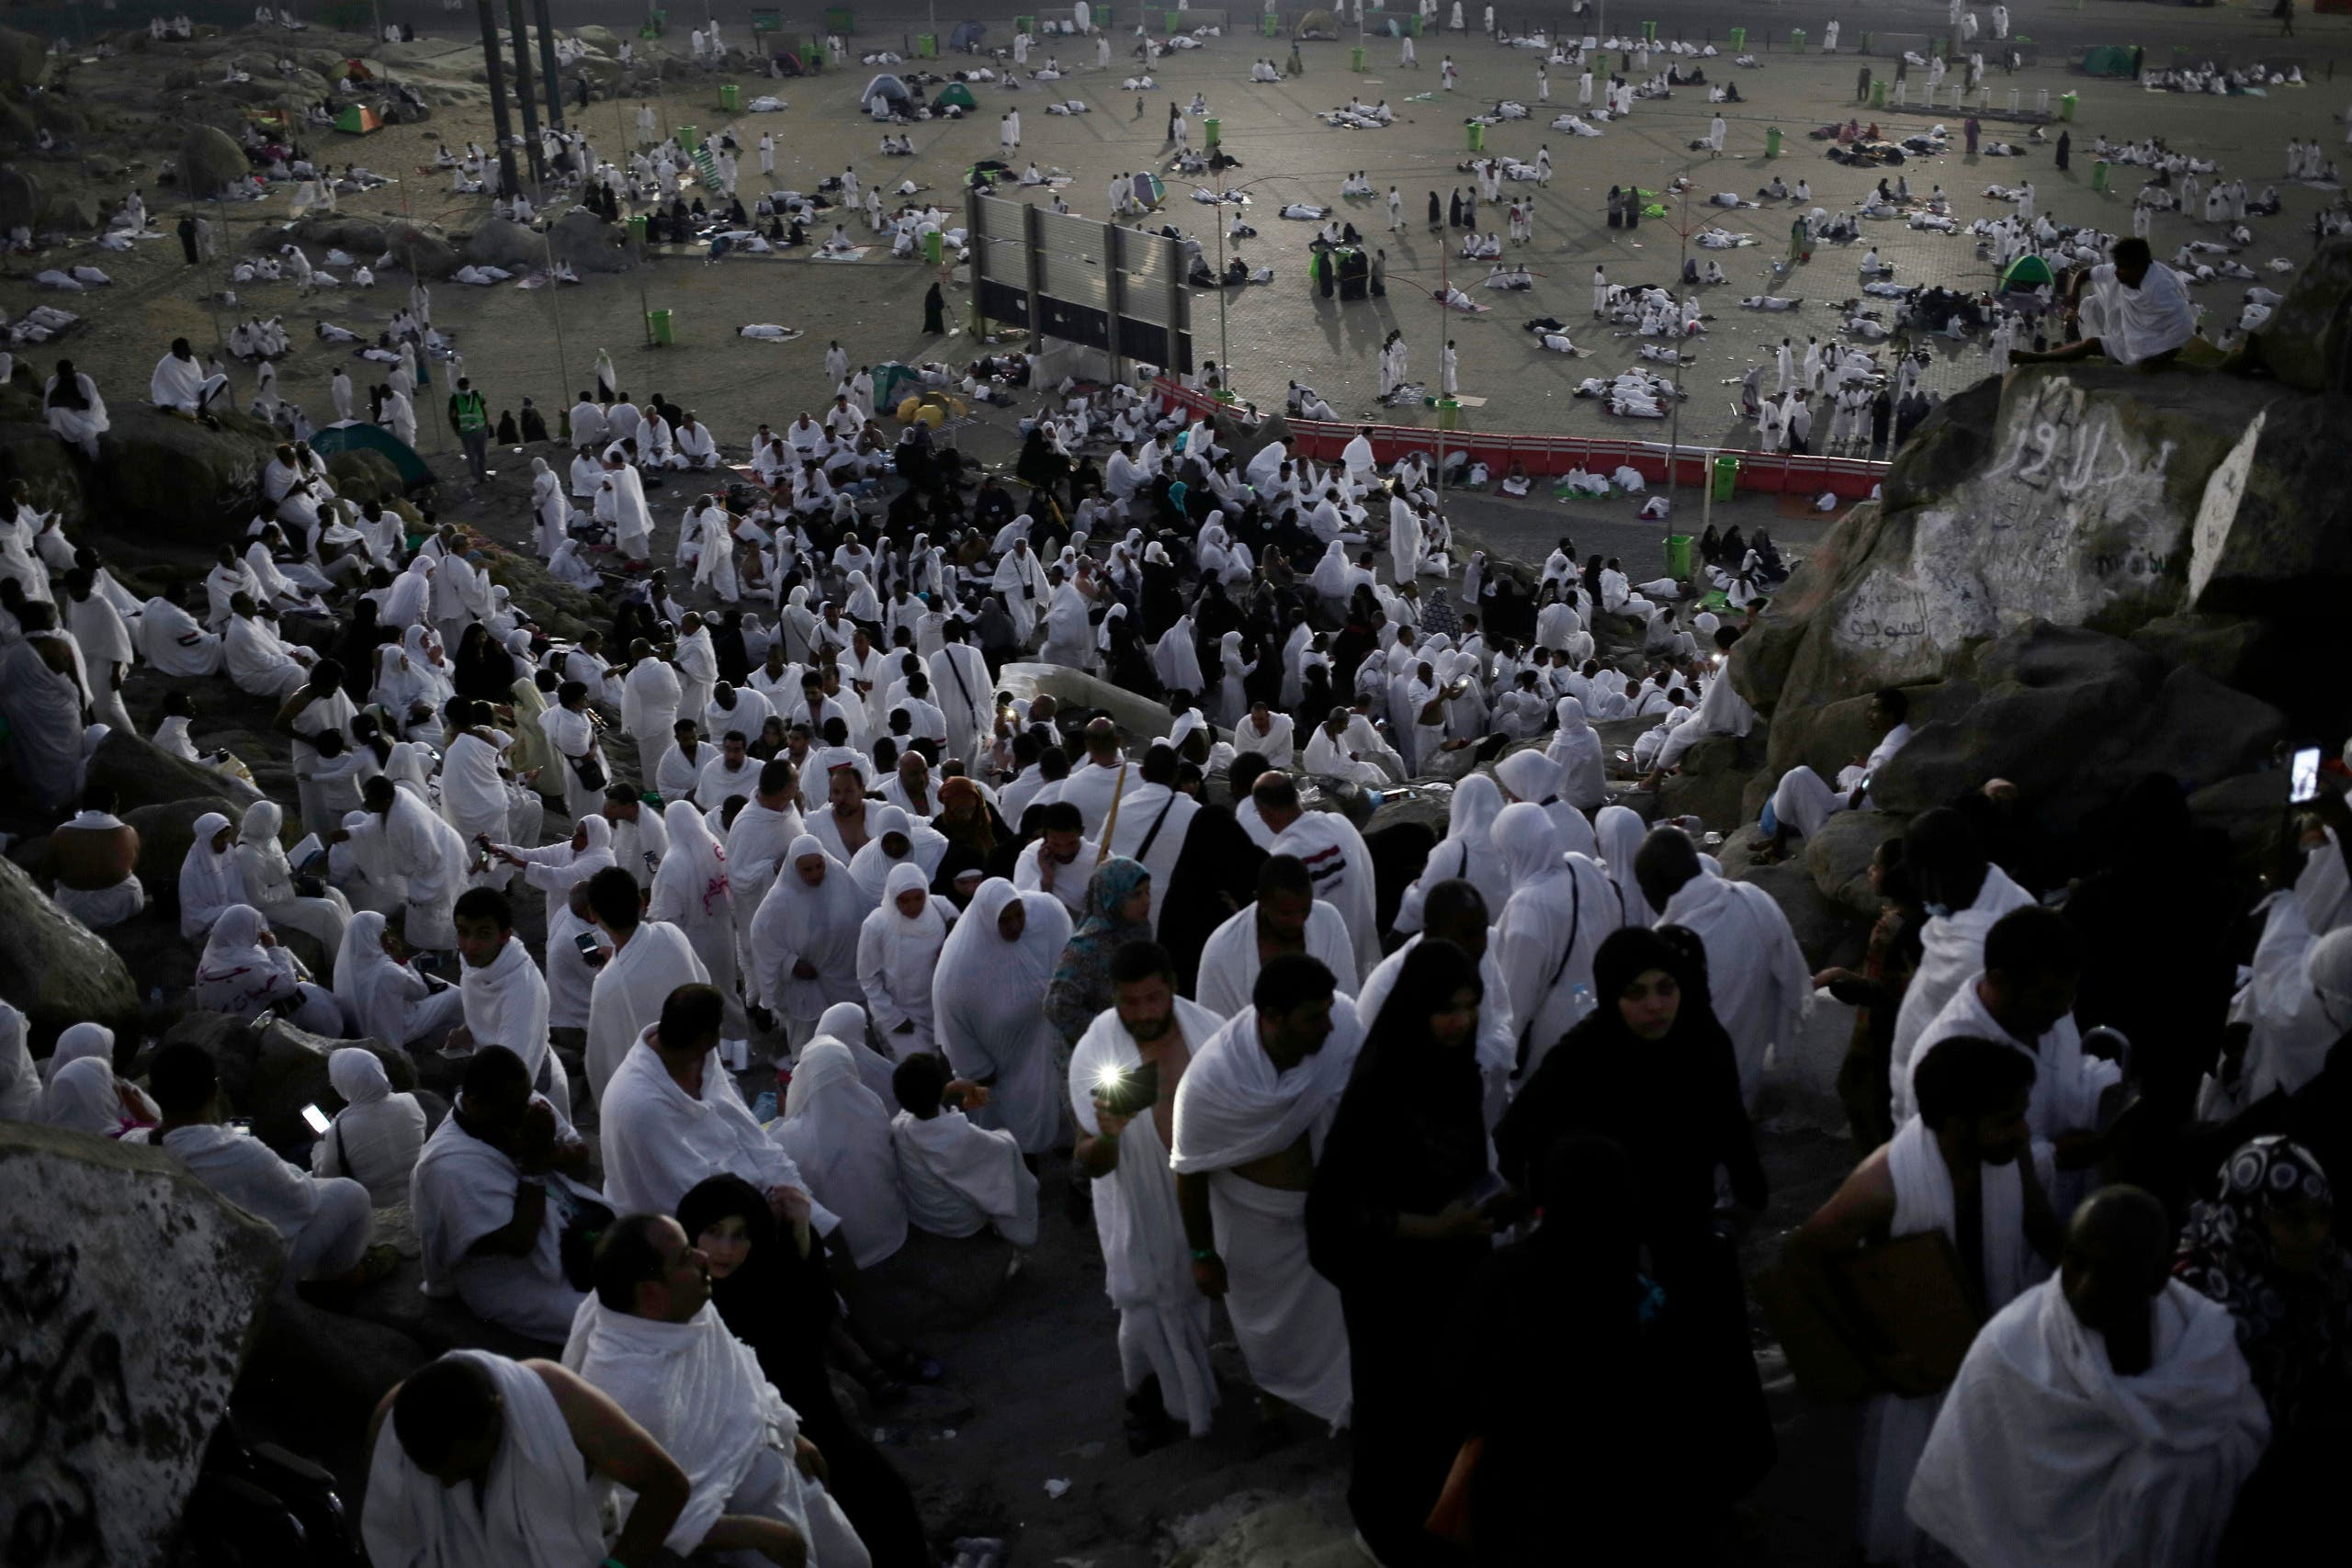 Muslim pilgrims pray on a rocky hill known as Mountain of Mercy, on the Plain of Arafat, during the annual hajj pilgrimage. (AP)